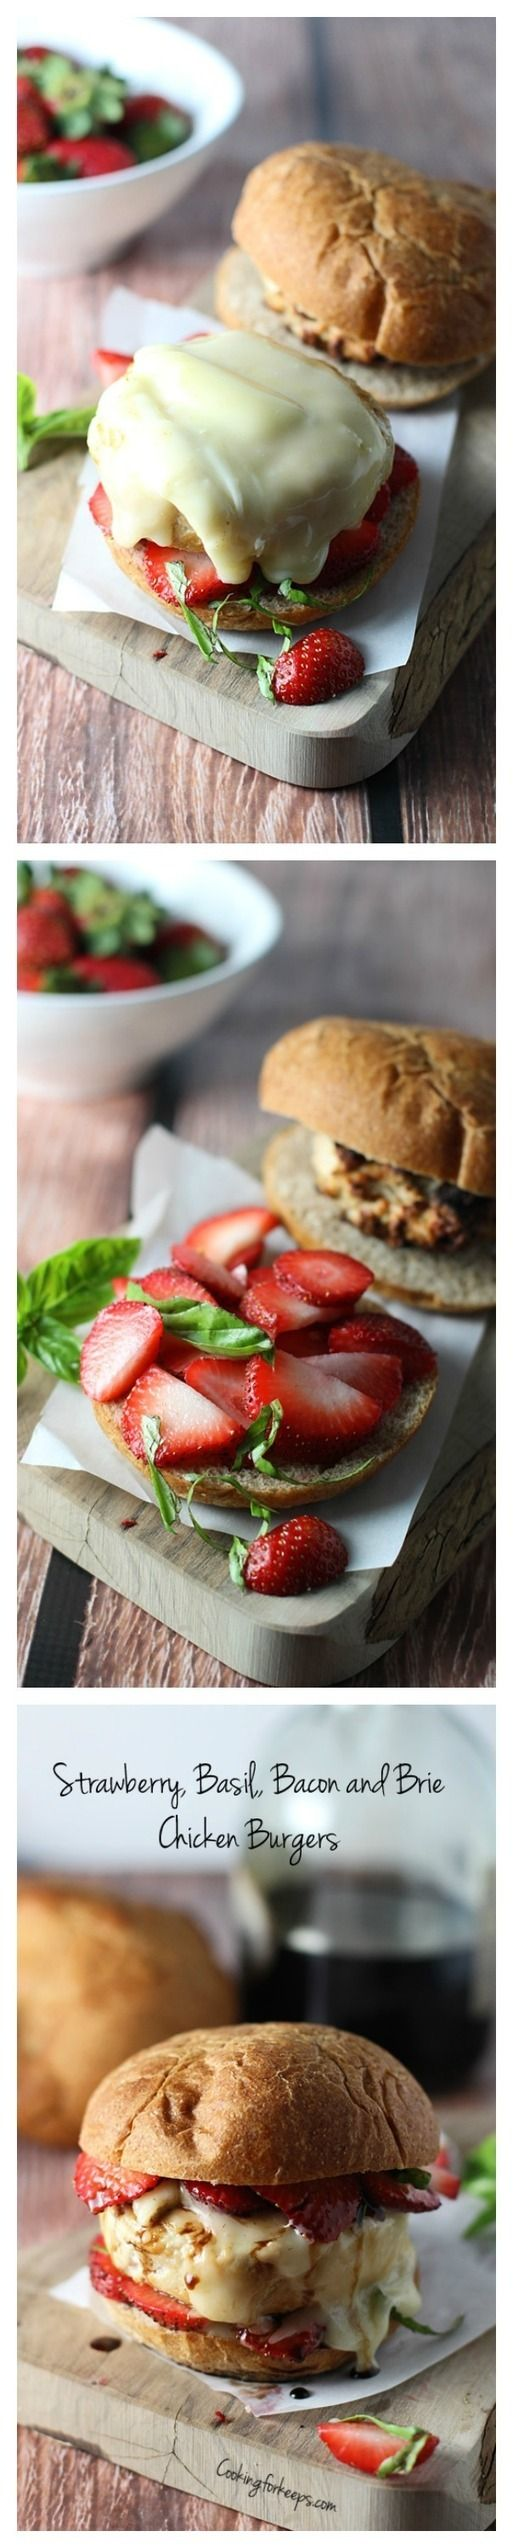 1000+ images about Boss Chef Recipes on Pinterest